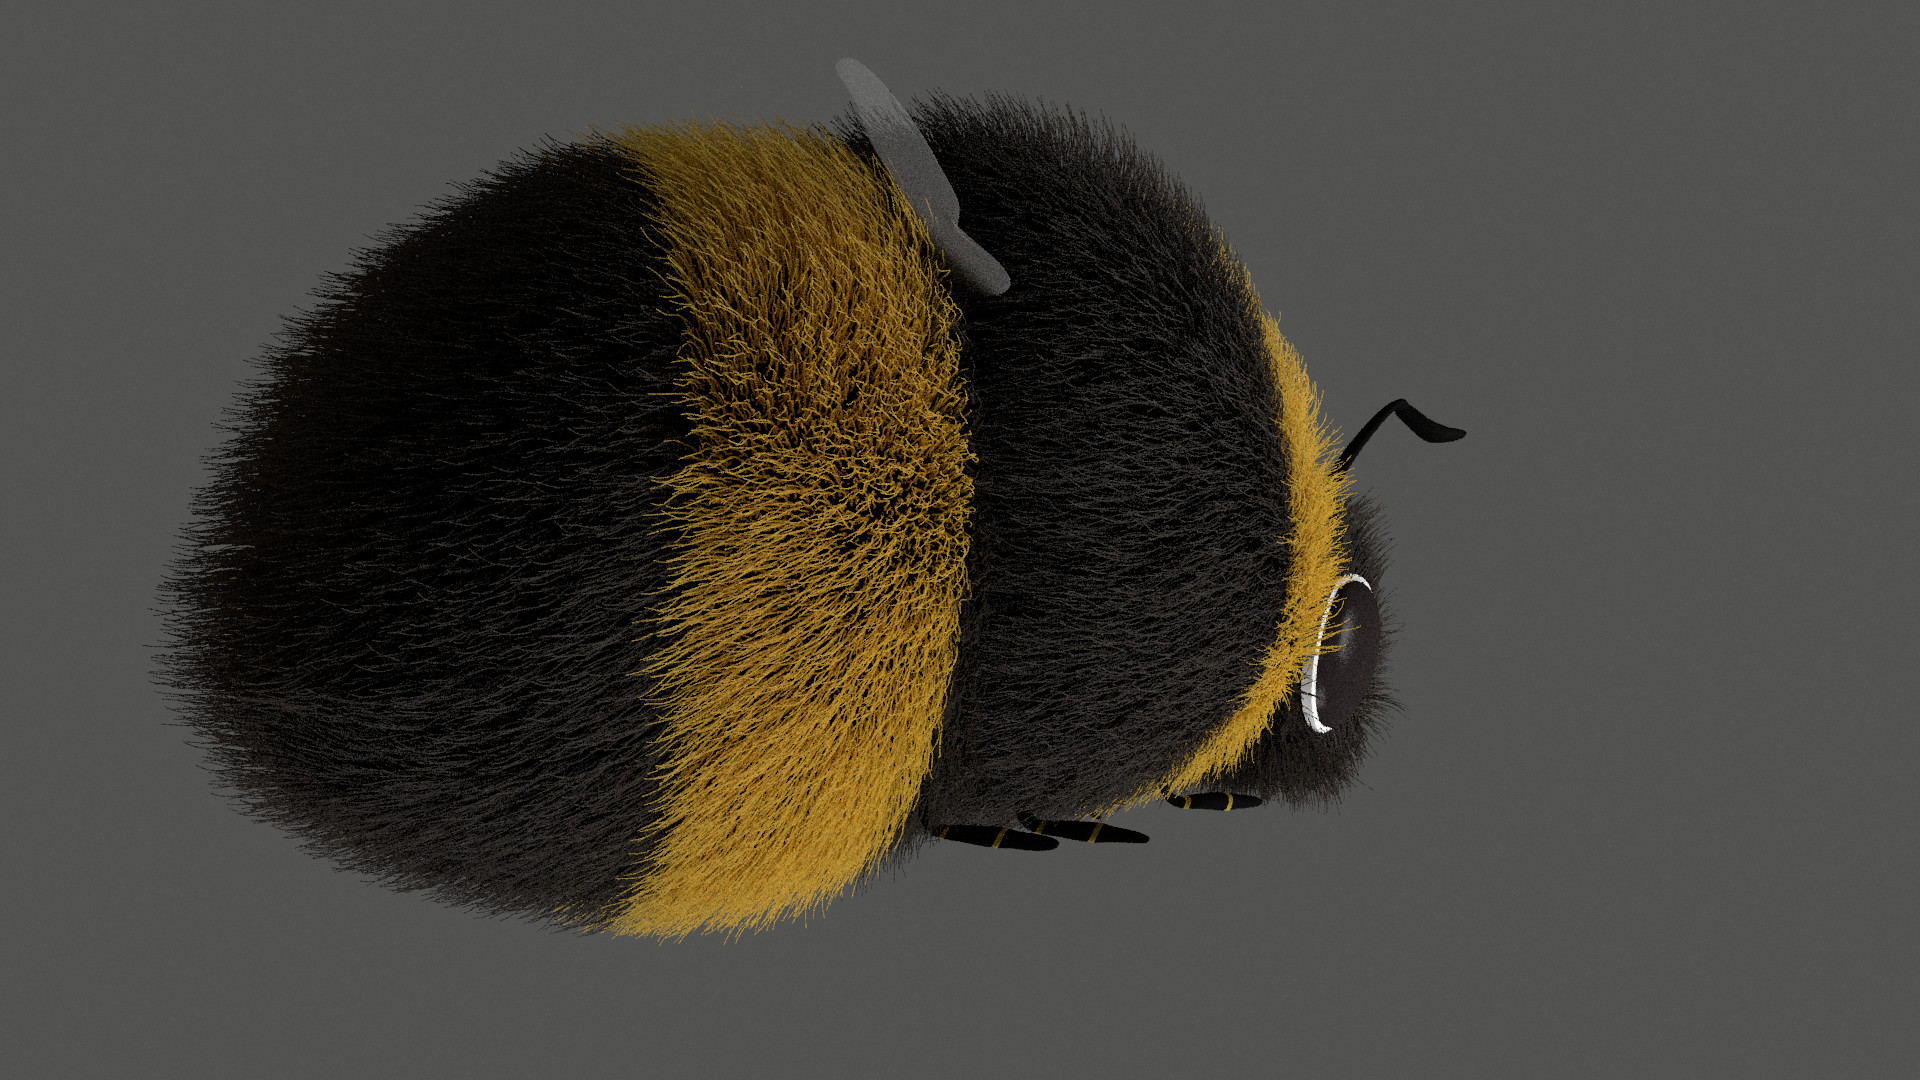 Laura gimenez bee render03 0115